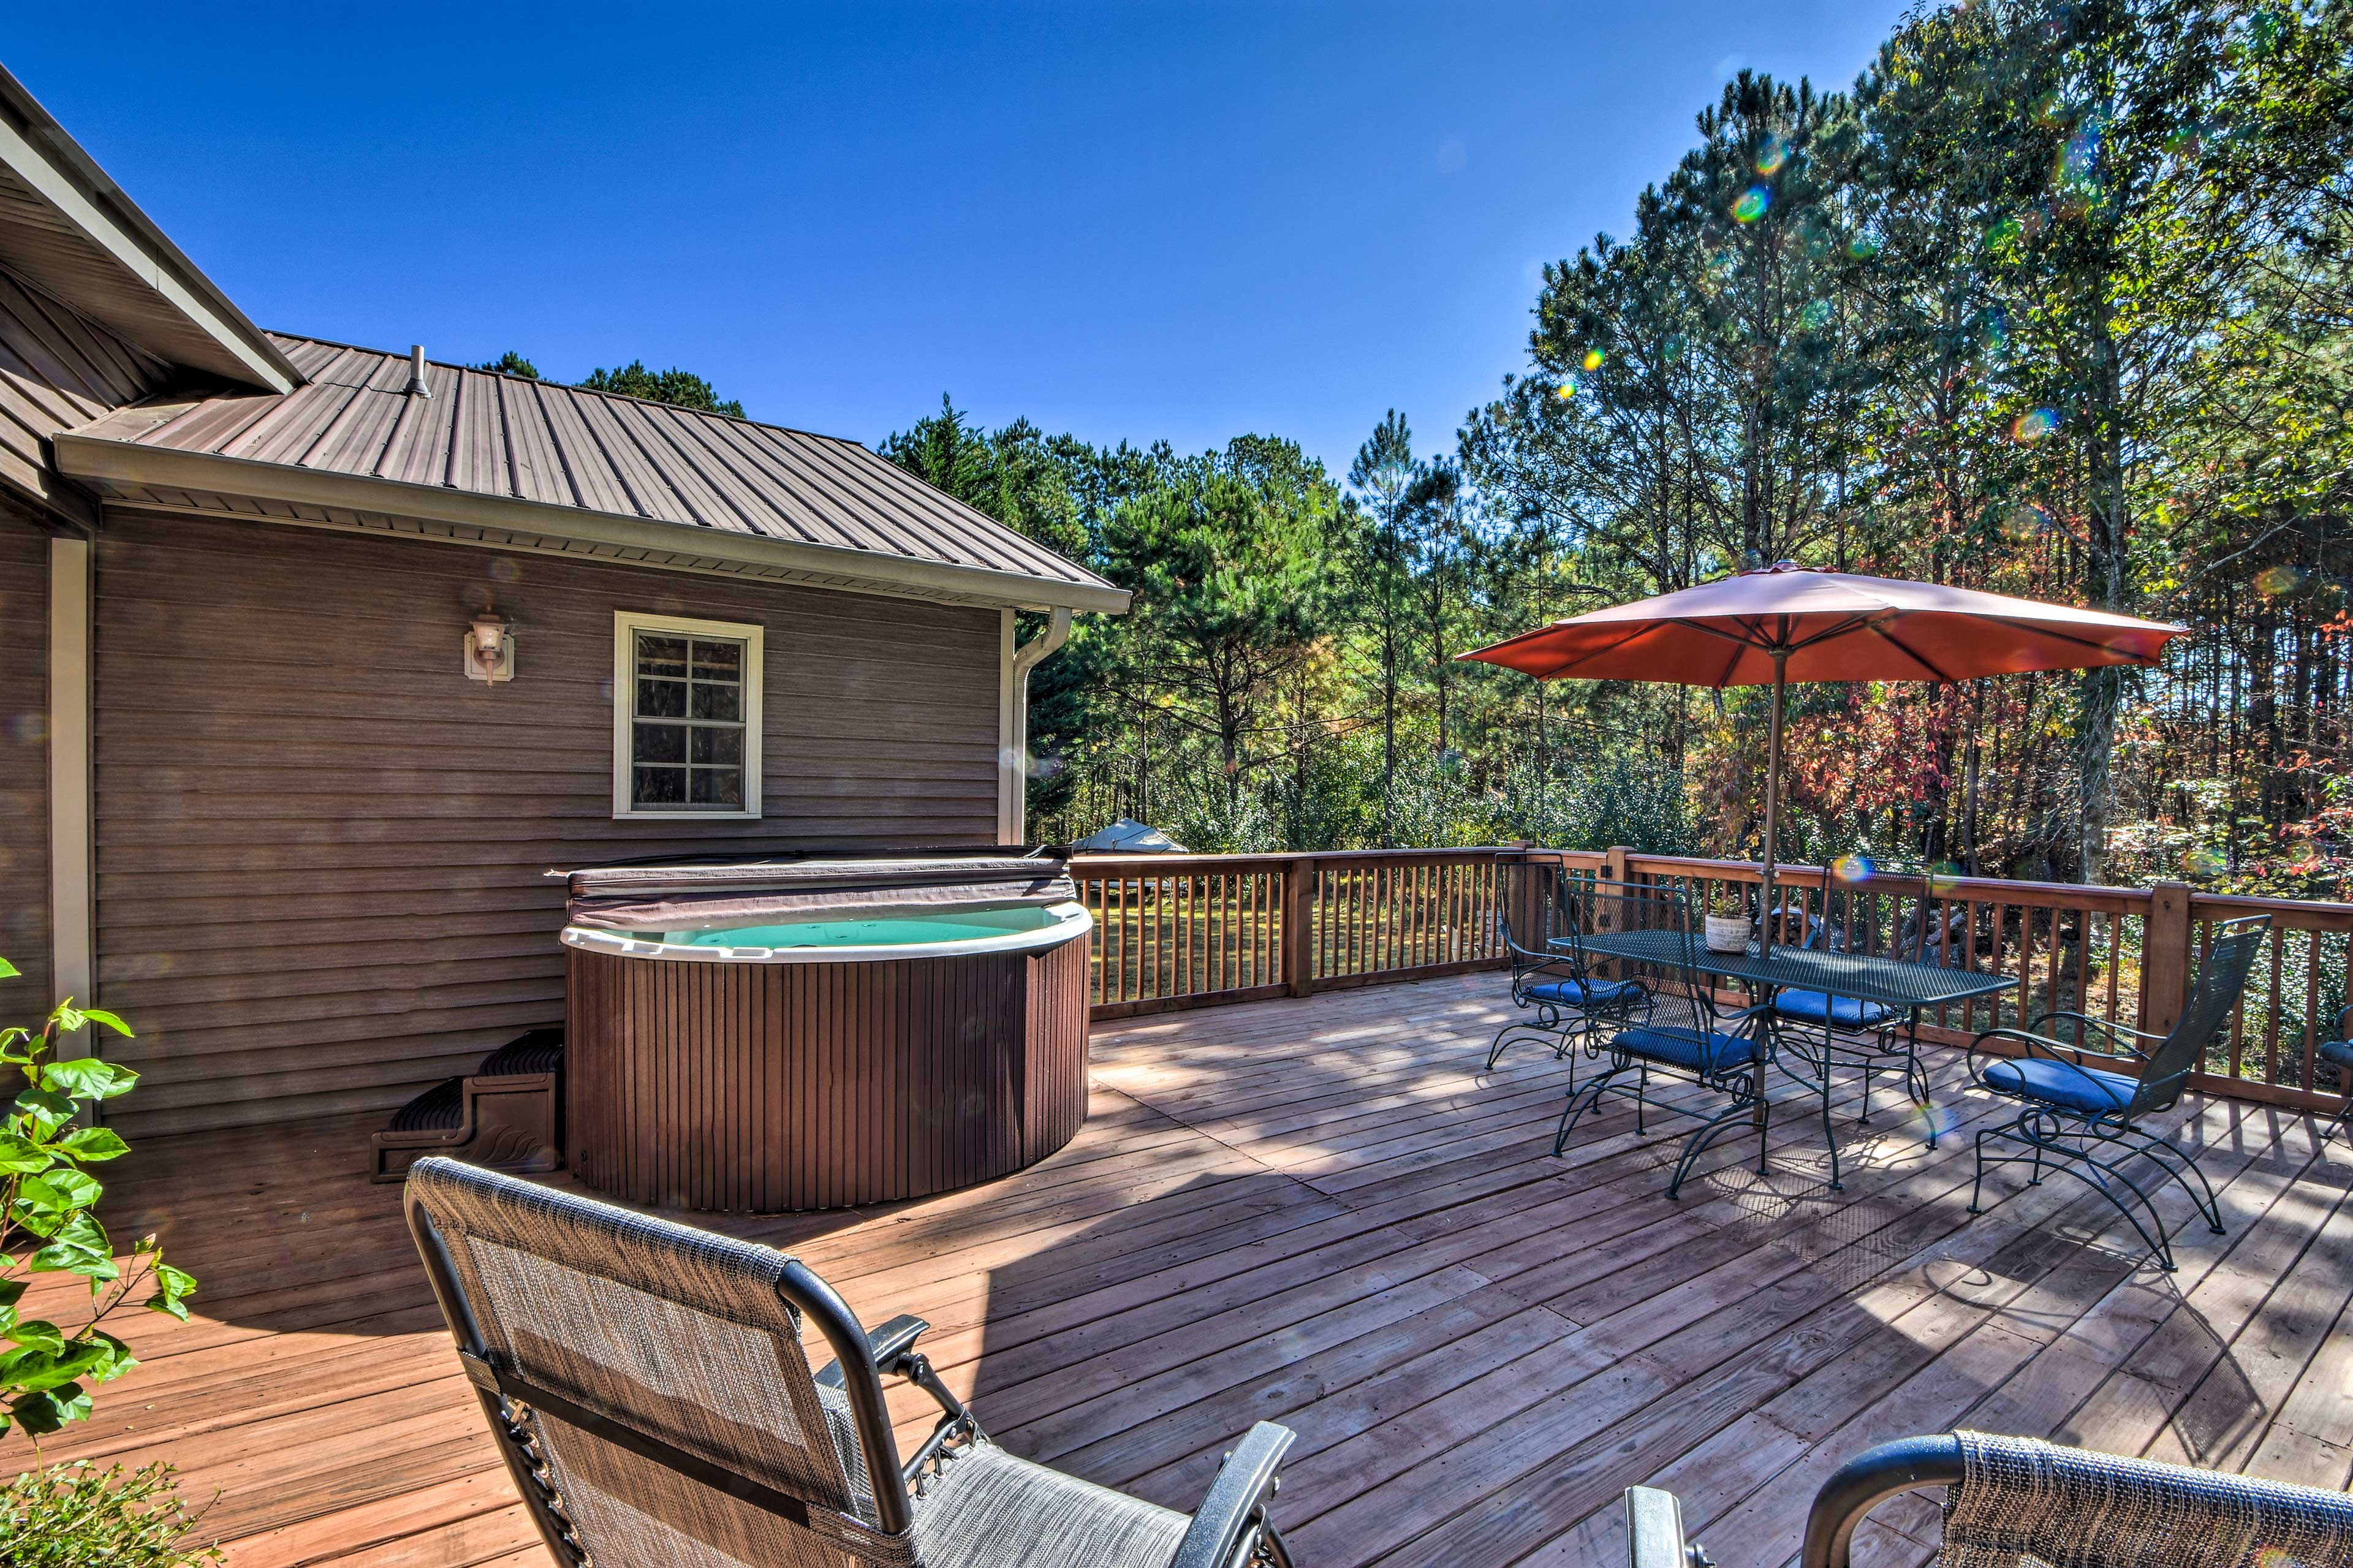 Soak in the private hot tub after a day full of hiking.